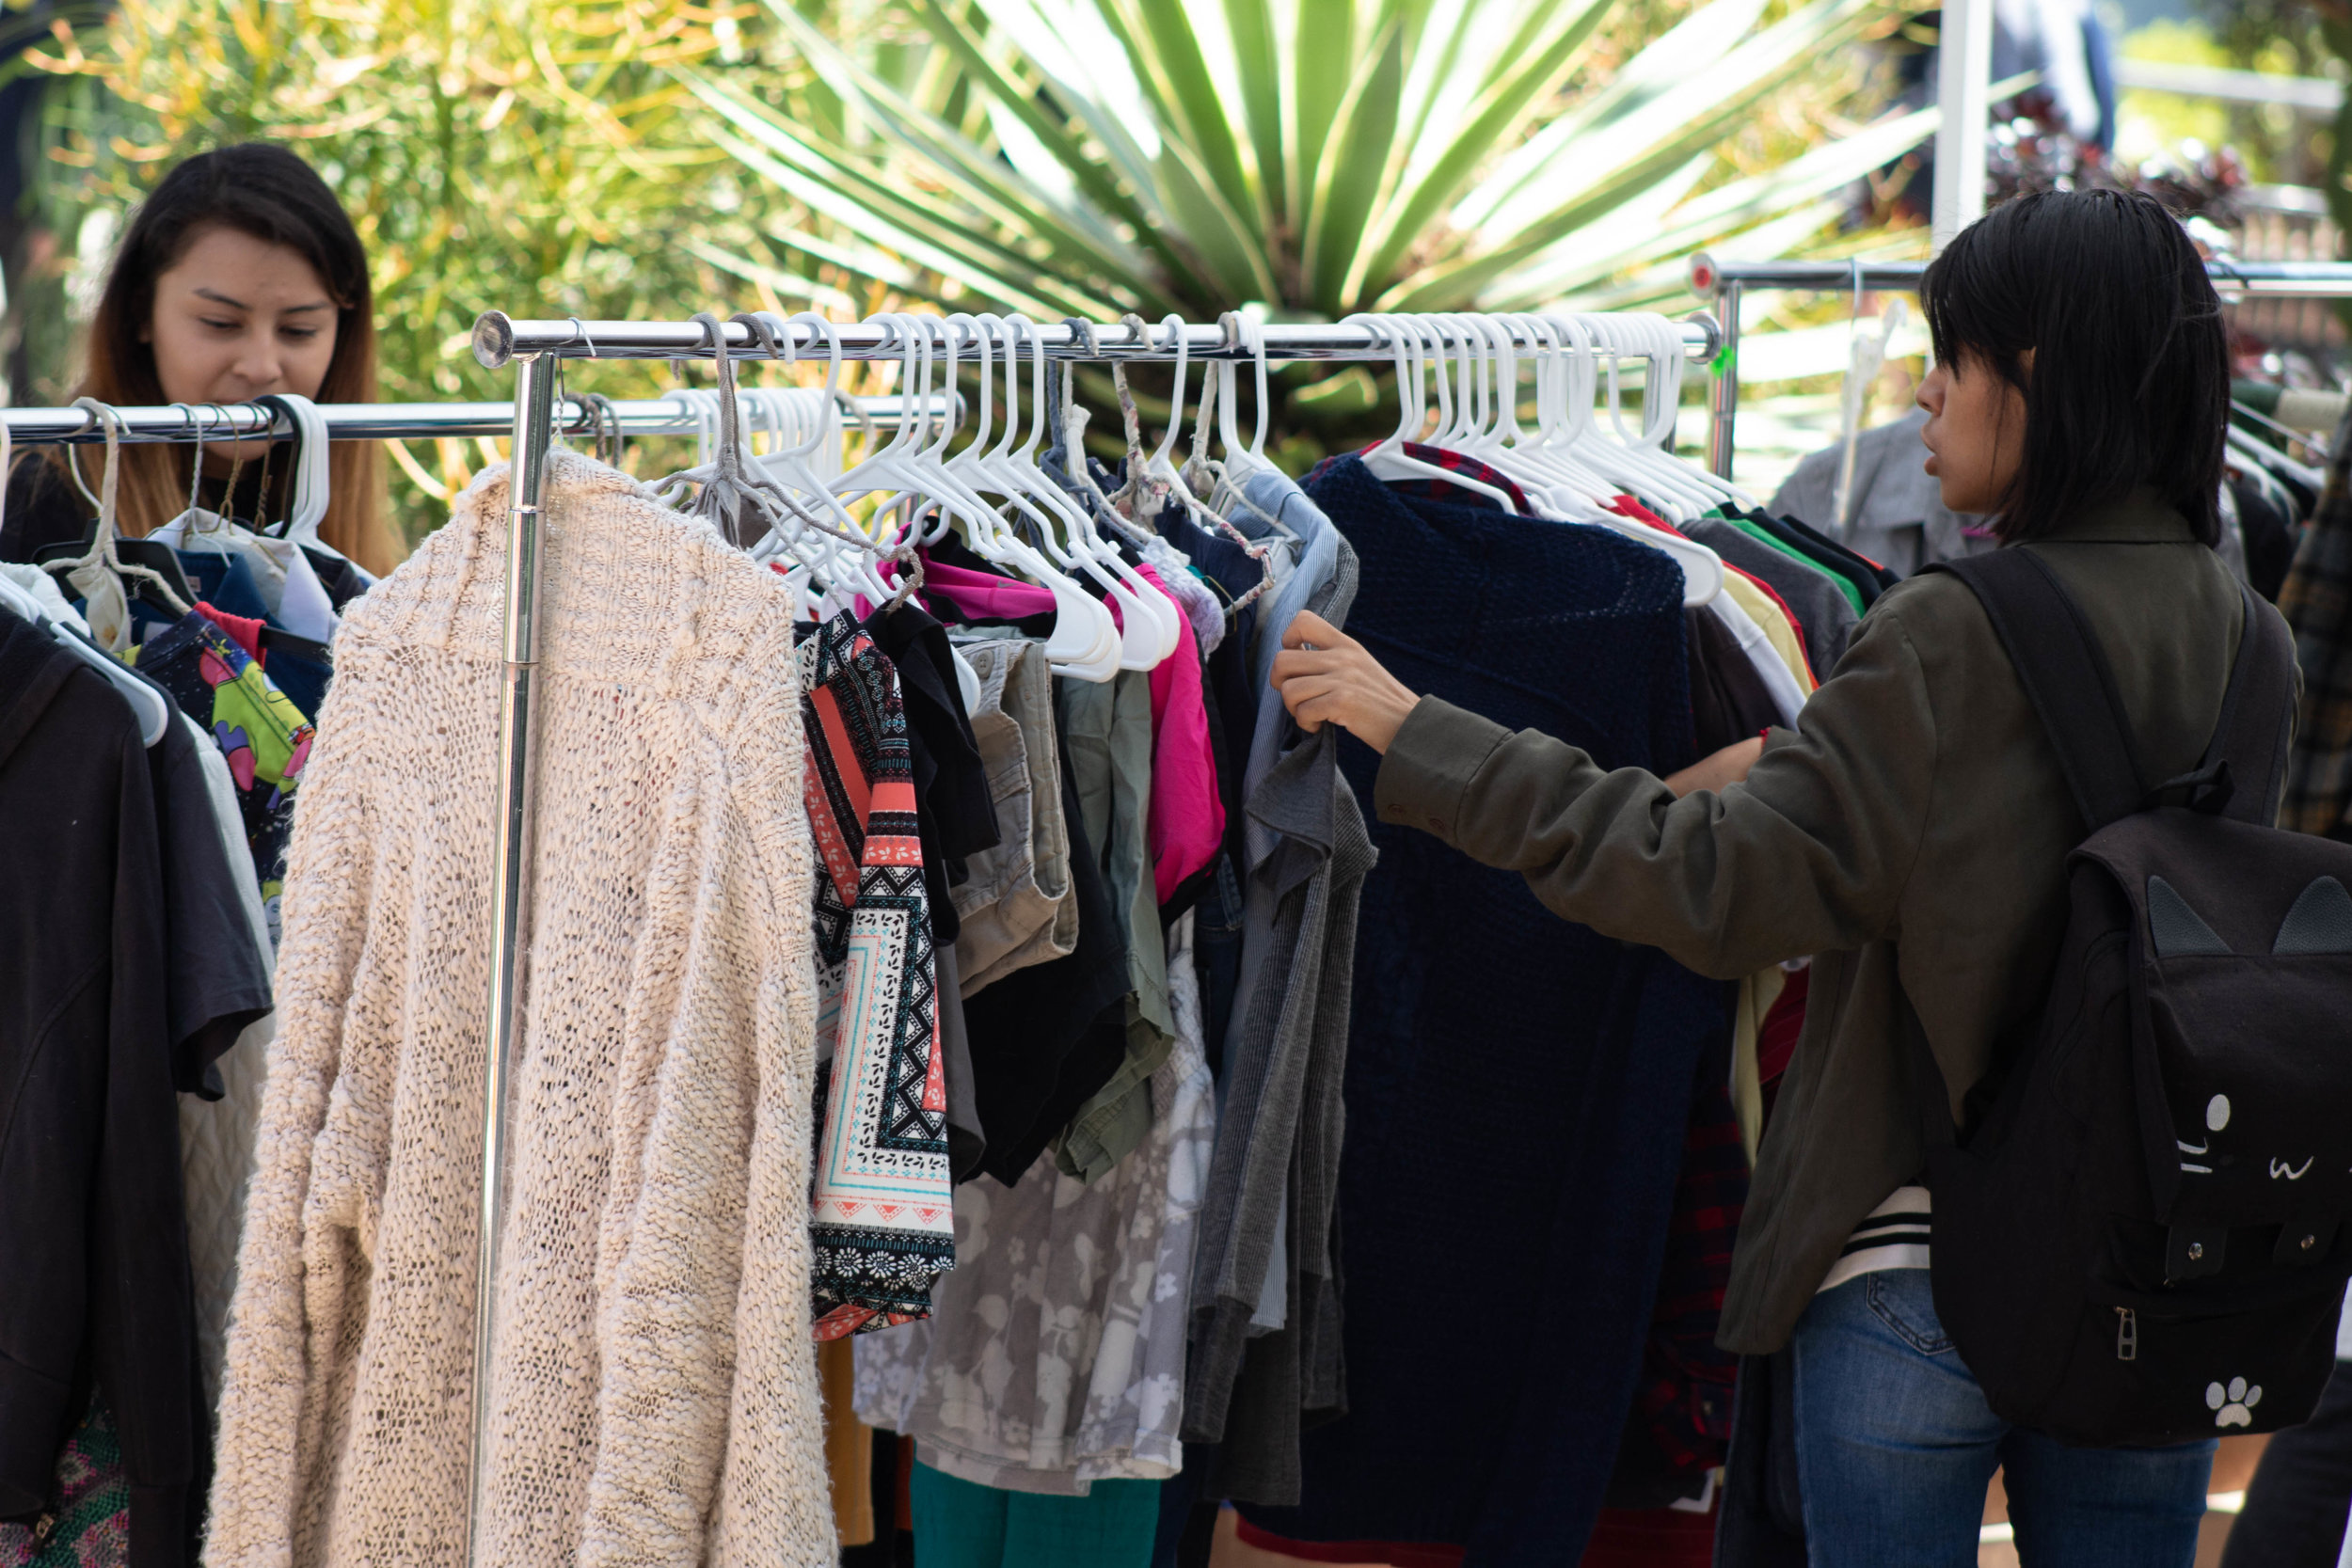 Gicela Gavis (right), a Psychology student, and Dianne Martinez (left), a Nursing student at Santa Monica College take a look at clothes on racks of the Clothing Swap during the Earth Week Interactive Learning Day at the SMC main campus quad on Wednesday, April 24, 2019 in Santa Monica, California. (Catherine Lima/Corsair Staff)